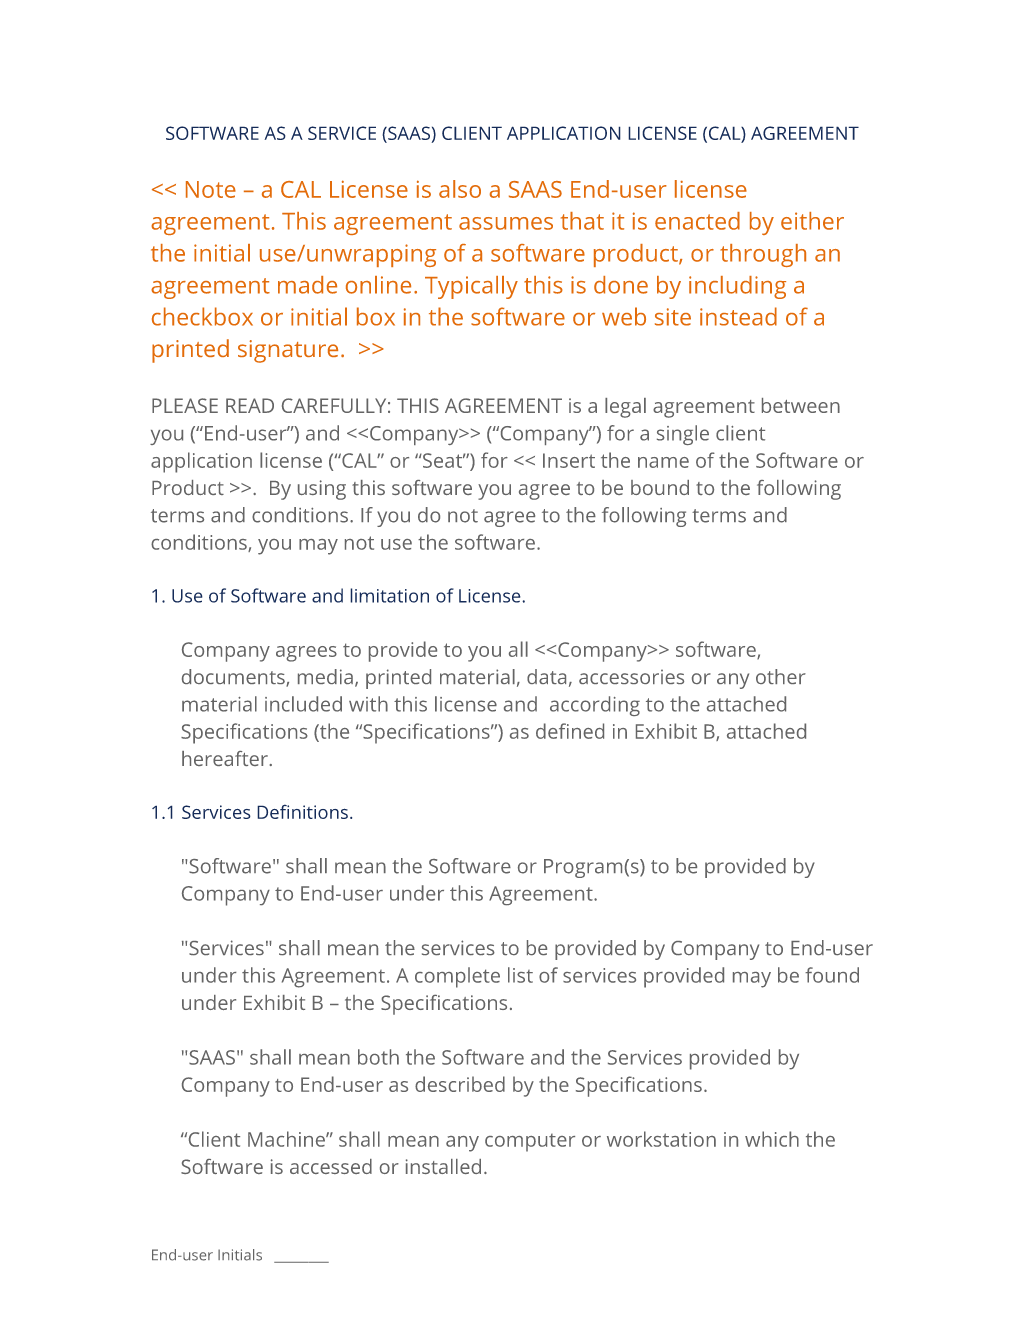 Saas Software As A Service Client License  The Software As A